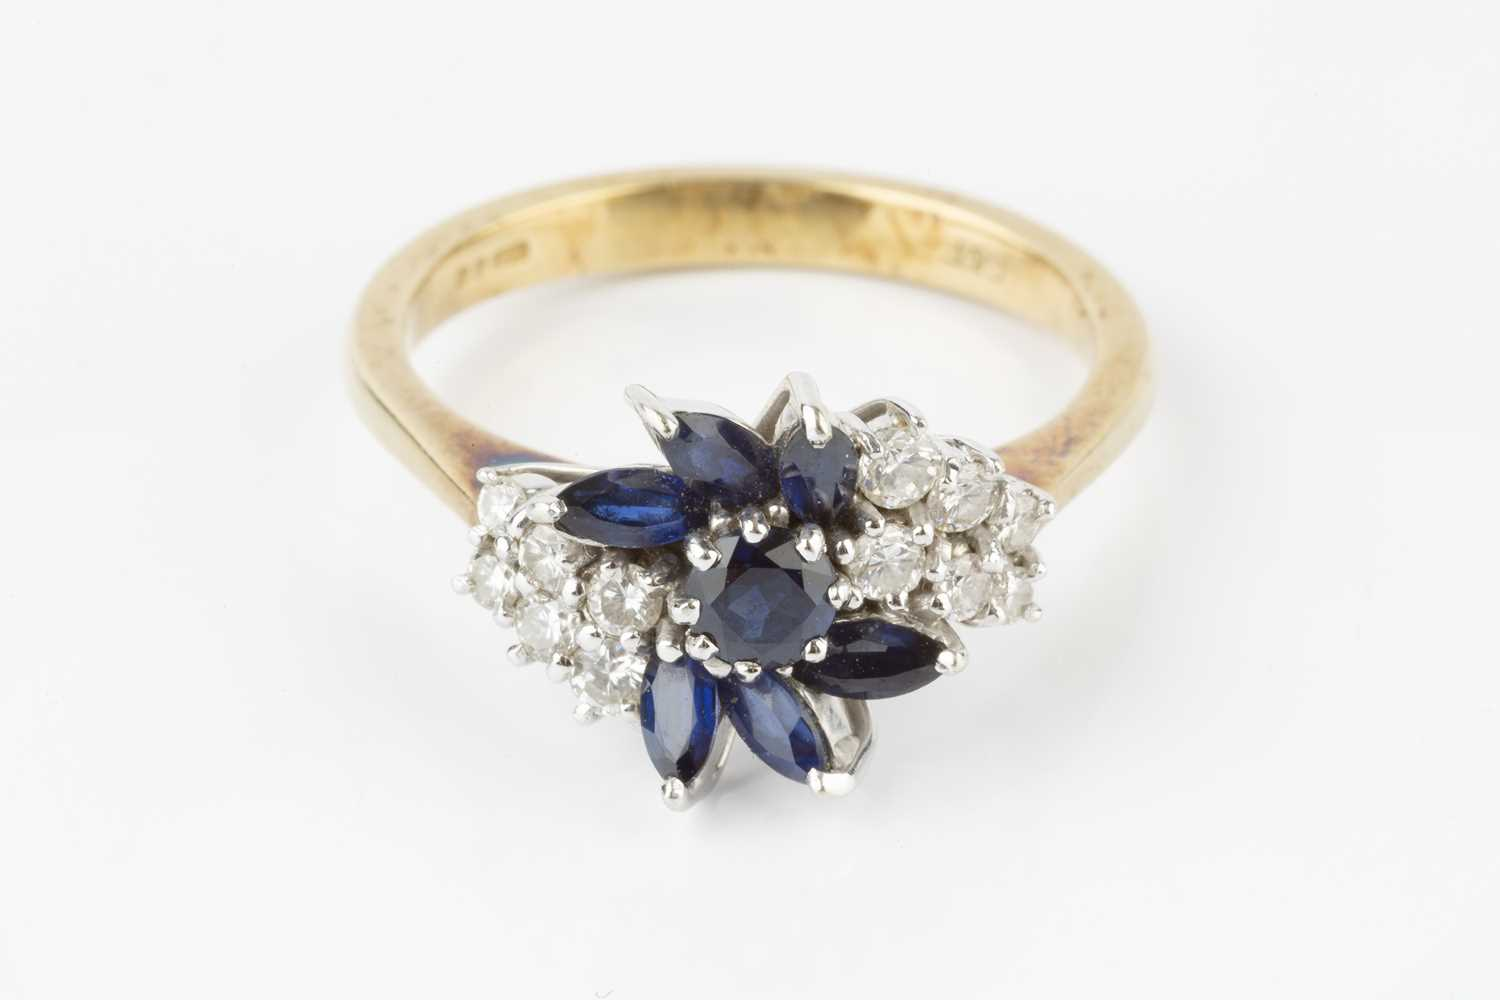 A sapphire and diamond cluster ring, designed as an abstract spray of circular mixed-cut and